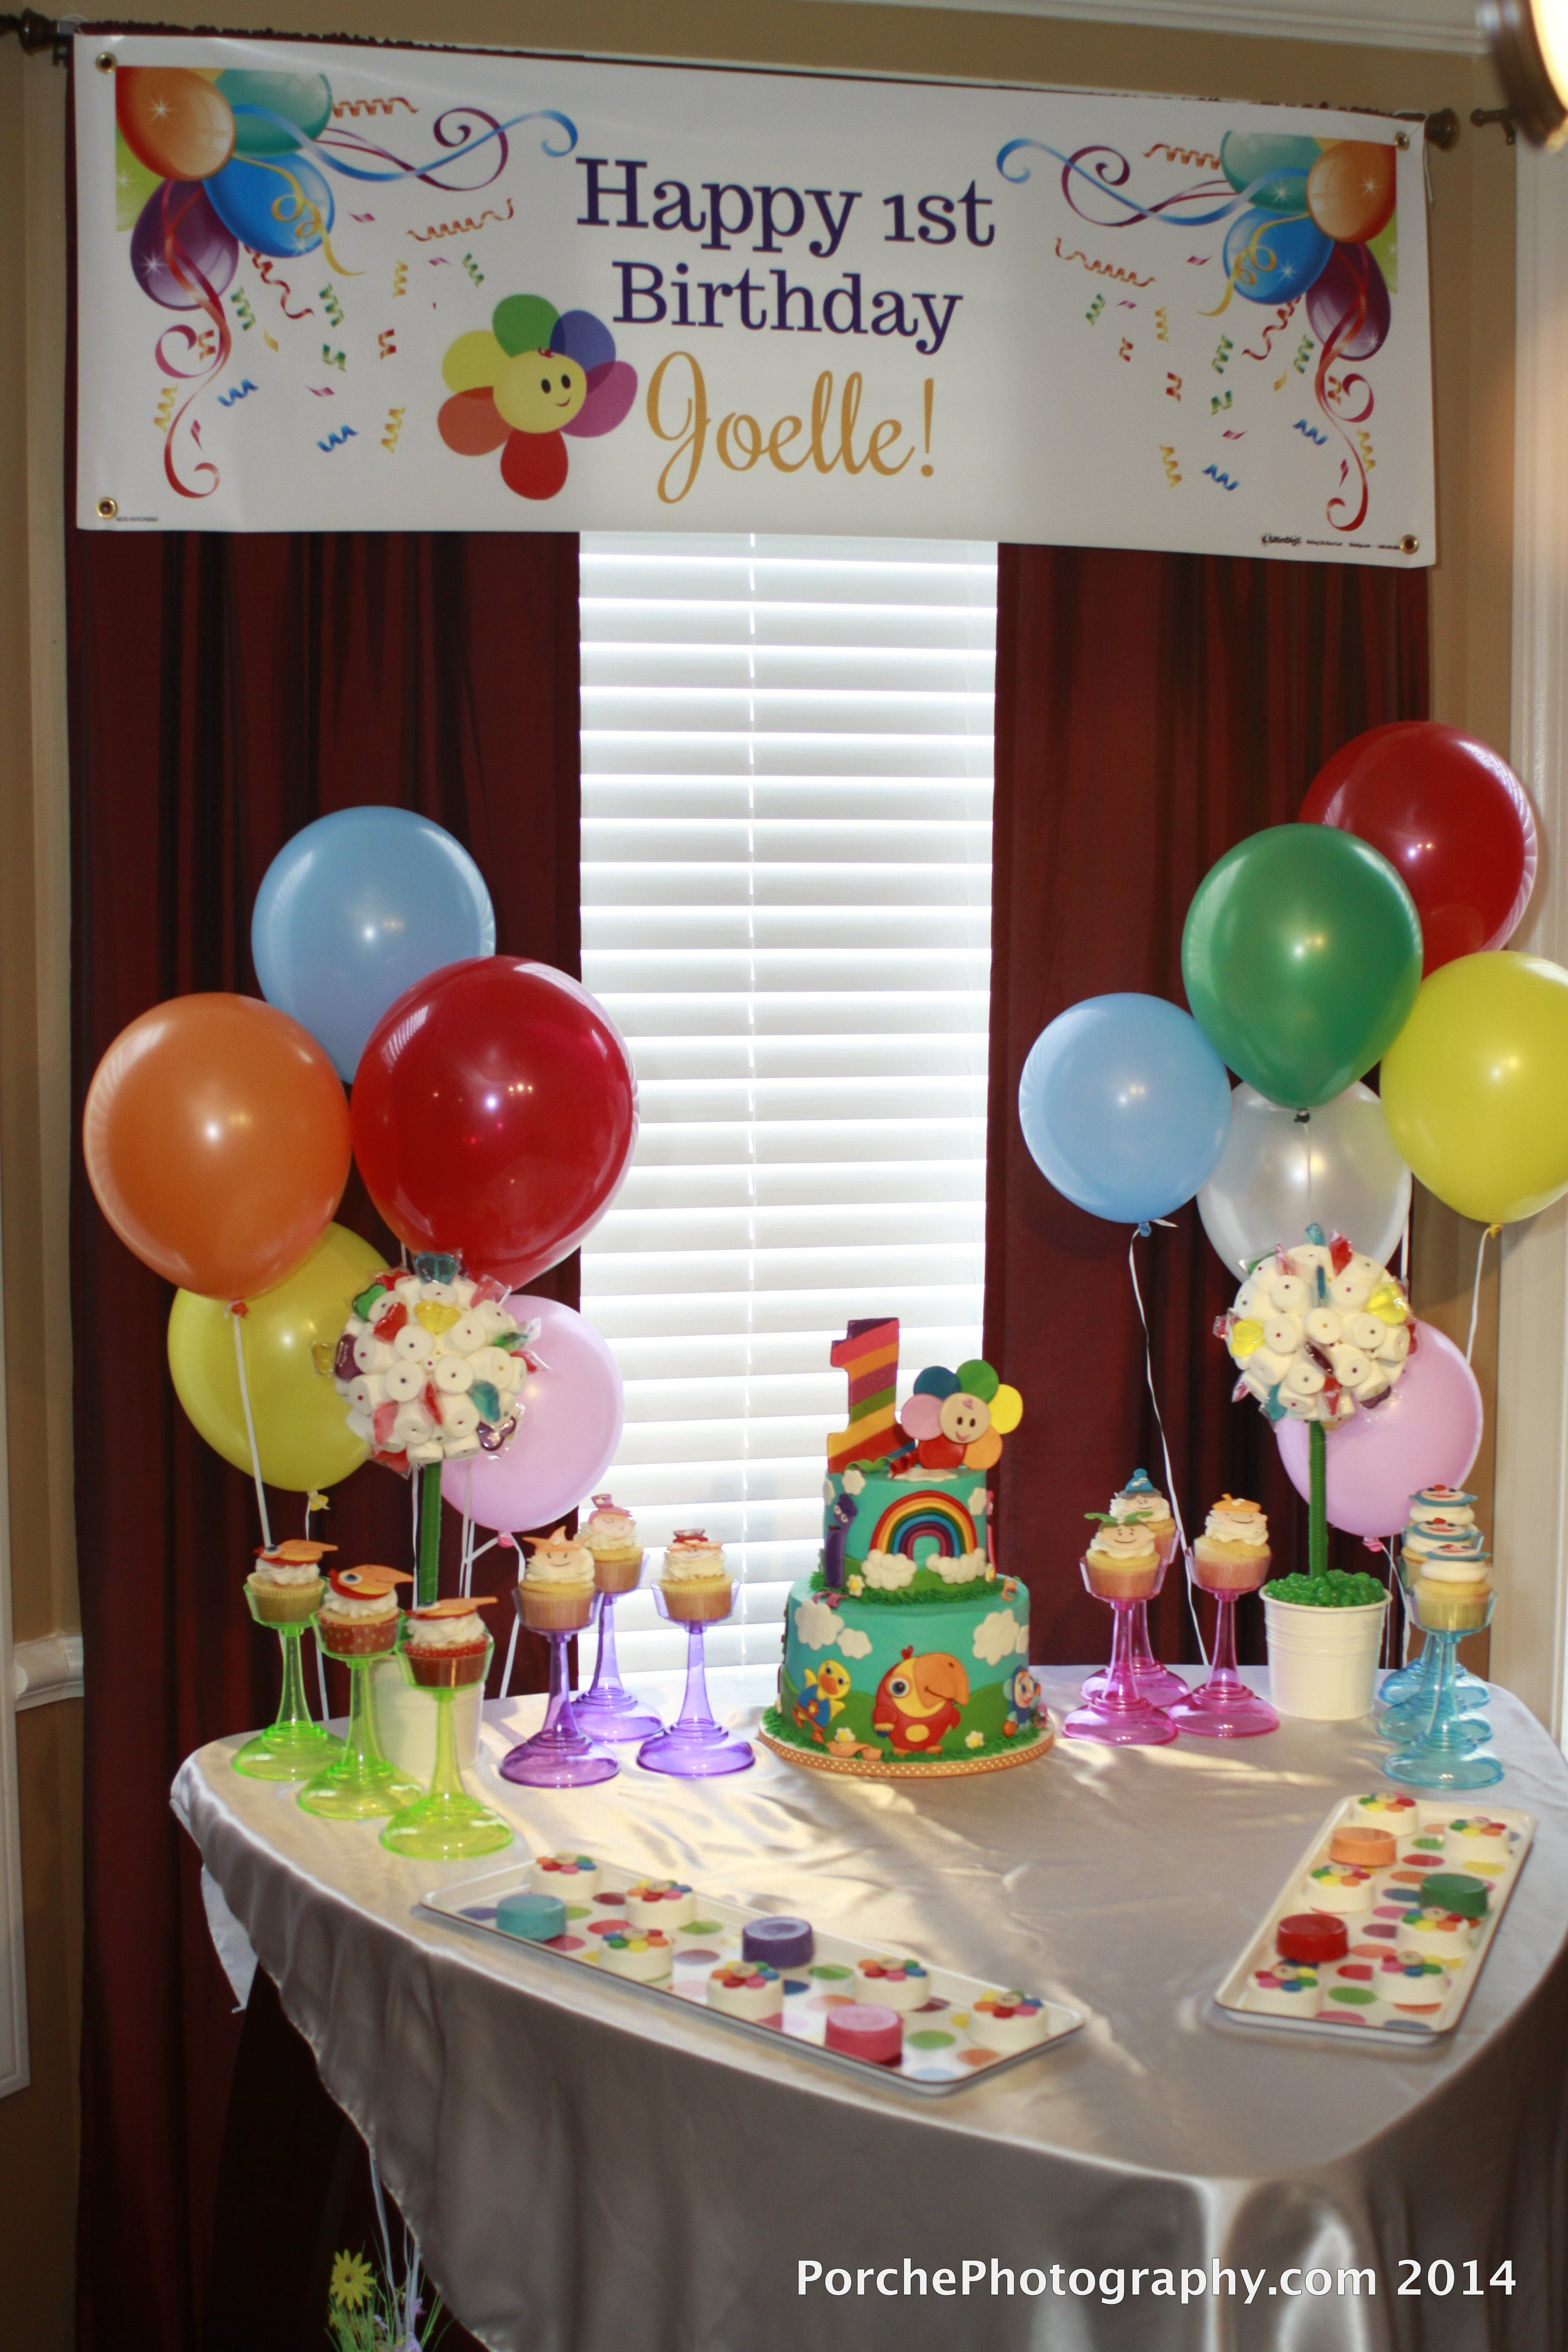 Best ideas about Baby First Birthday Party . Save or Pin BabyFirst TV 1st birthday party Now.